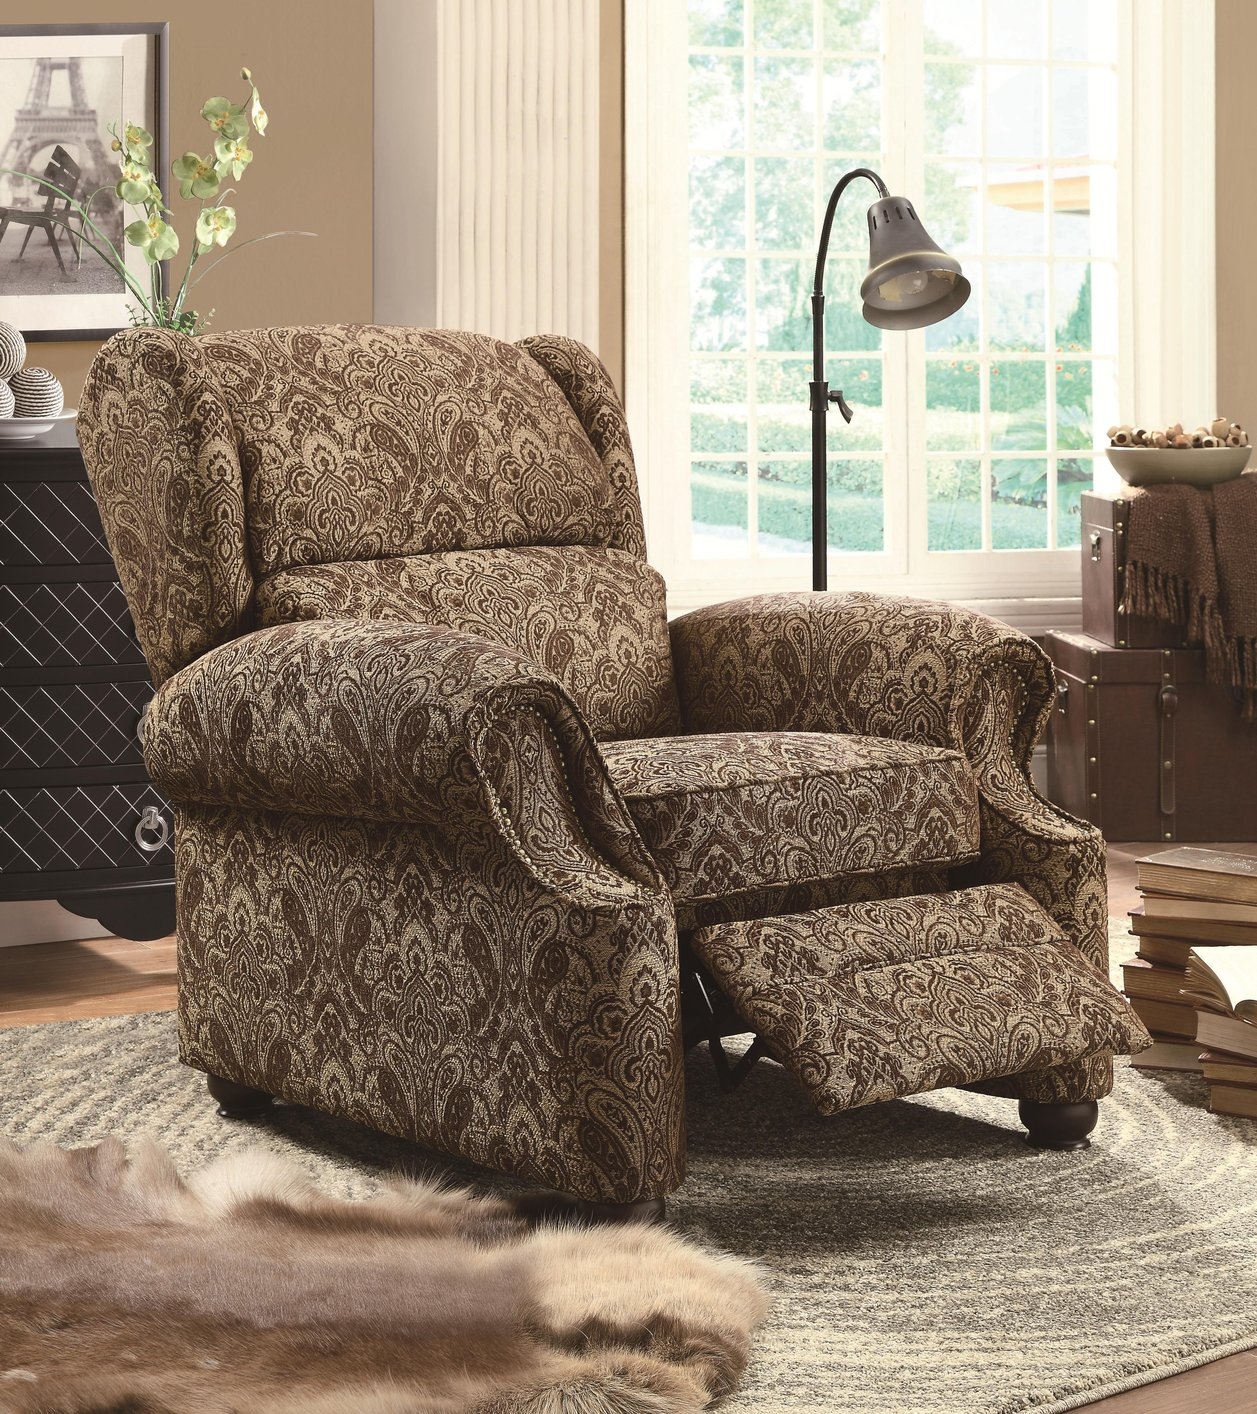 Merveilleux Brown Fabric Reclining Chair